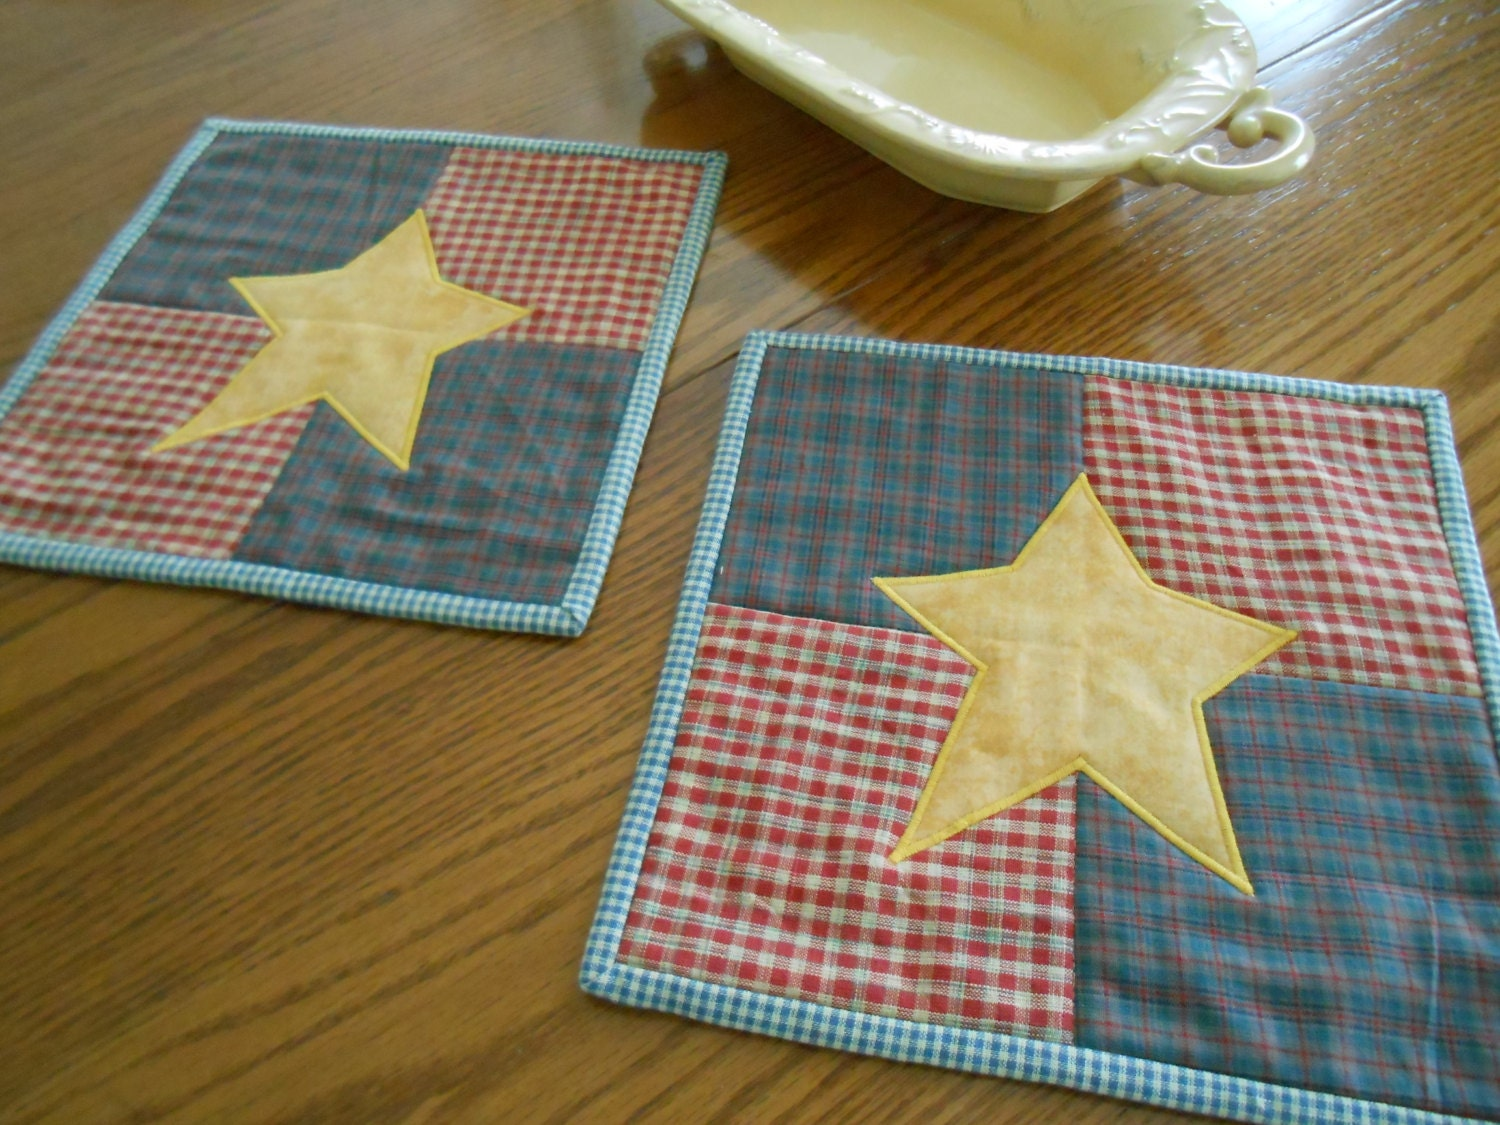 Homespun Table Mats Candle Mats Rustic Table Toppers